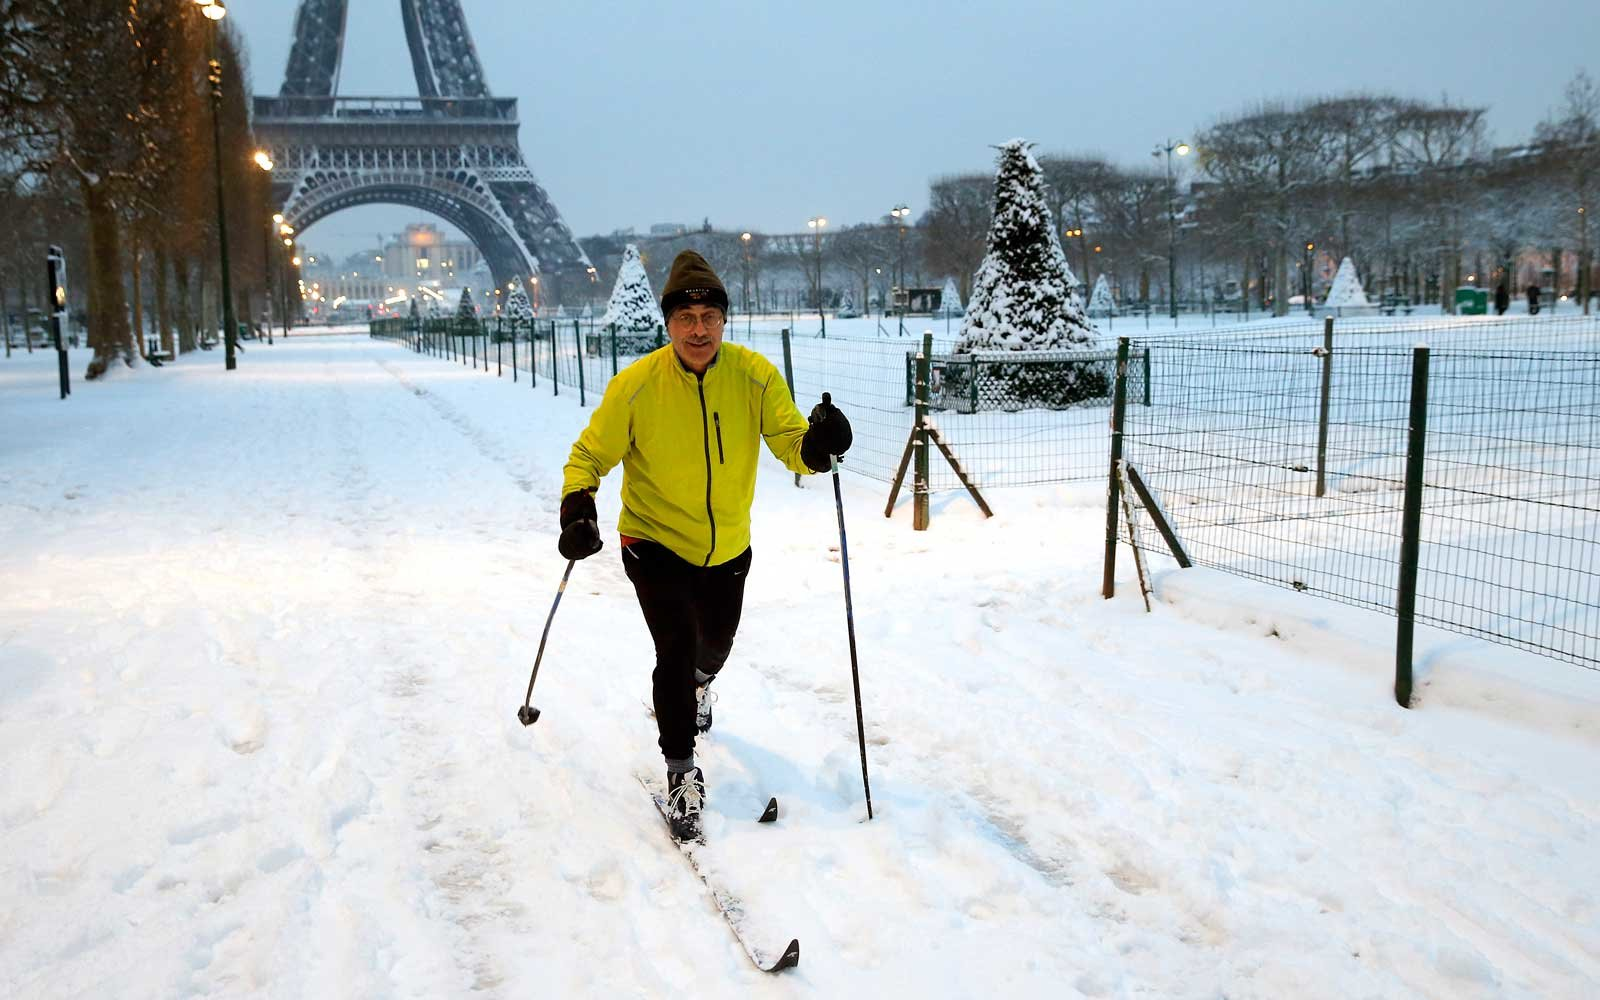 A man enjoys skiing in the Champs de Mars garden covered by snow near the Eiffel Tower on February 7, 2018 in Paris, France.